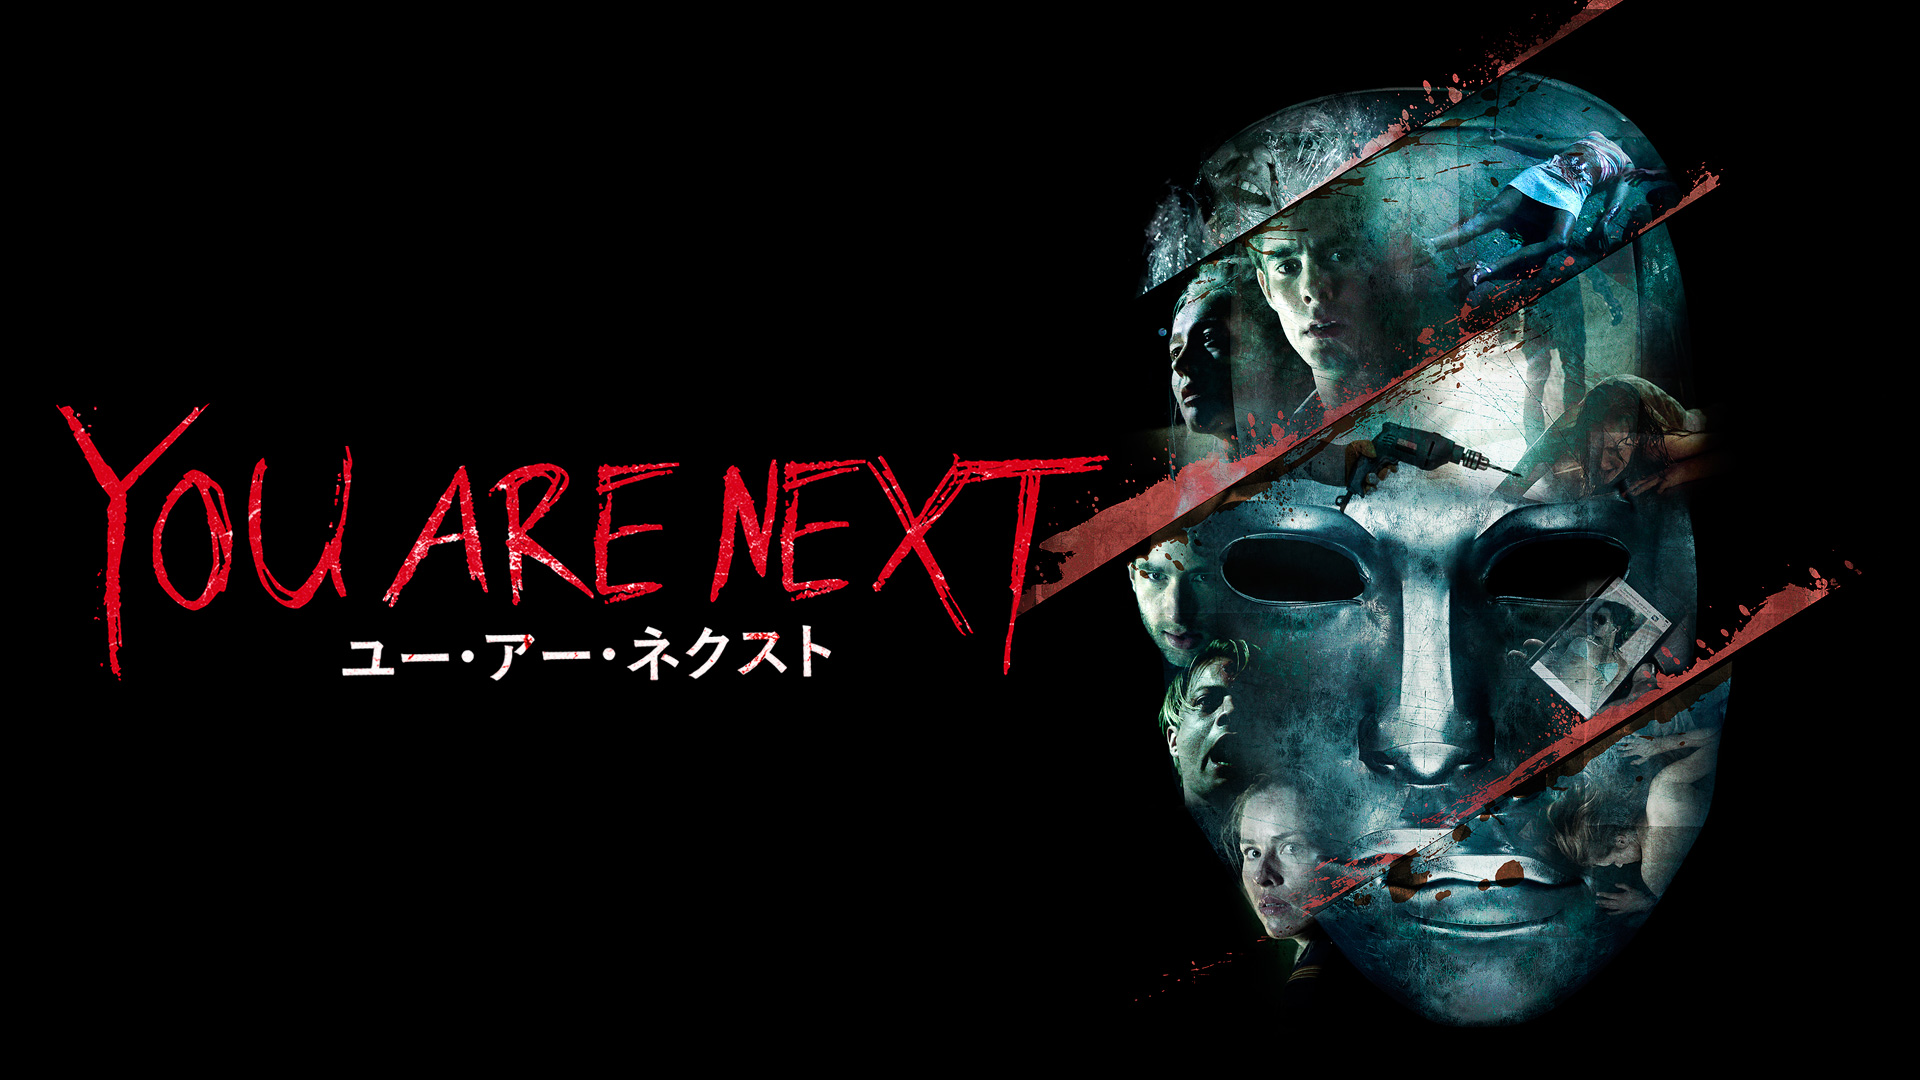 You Are Next ユー・アー・ネクスト(字幕版)